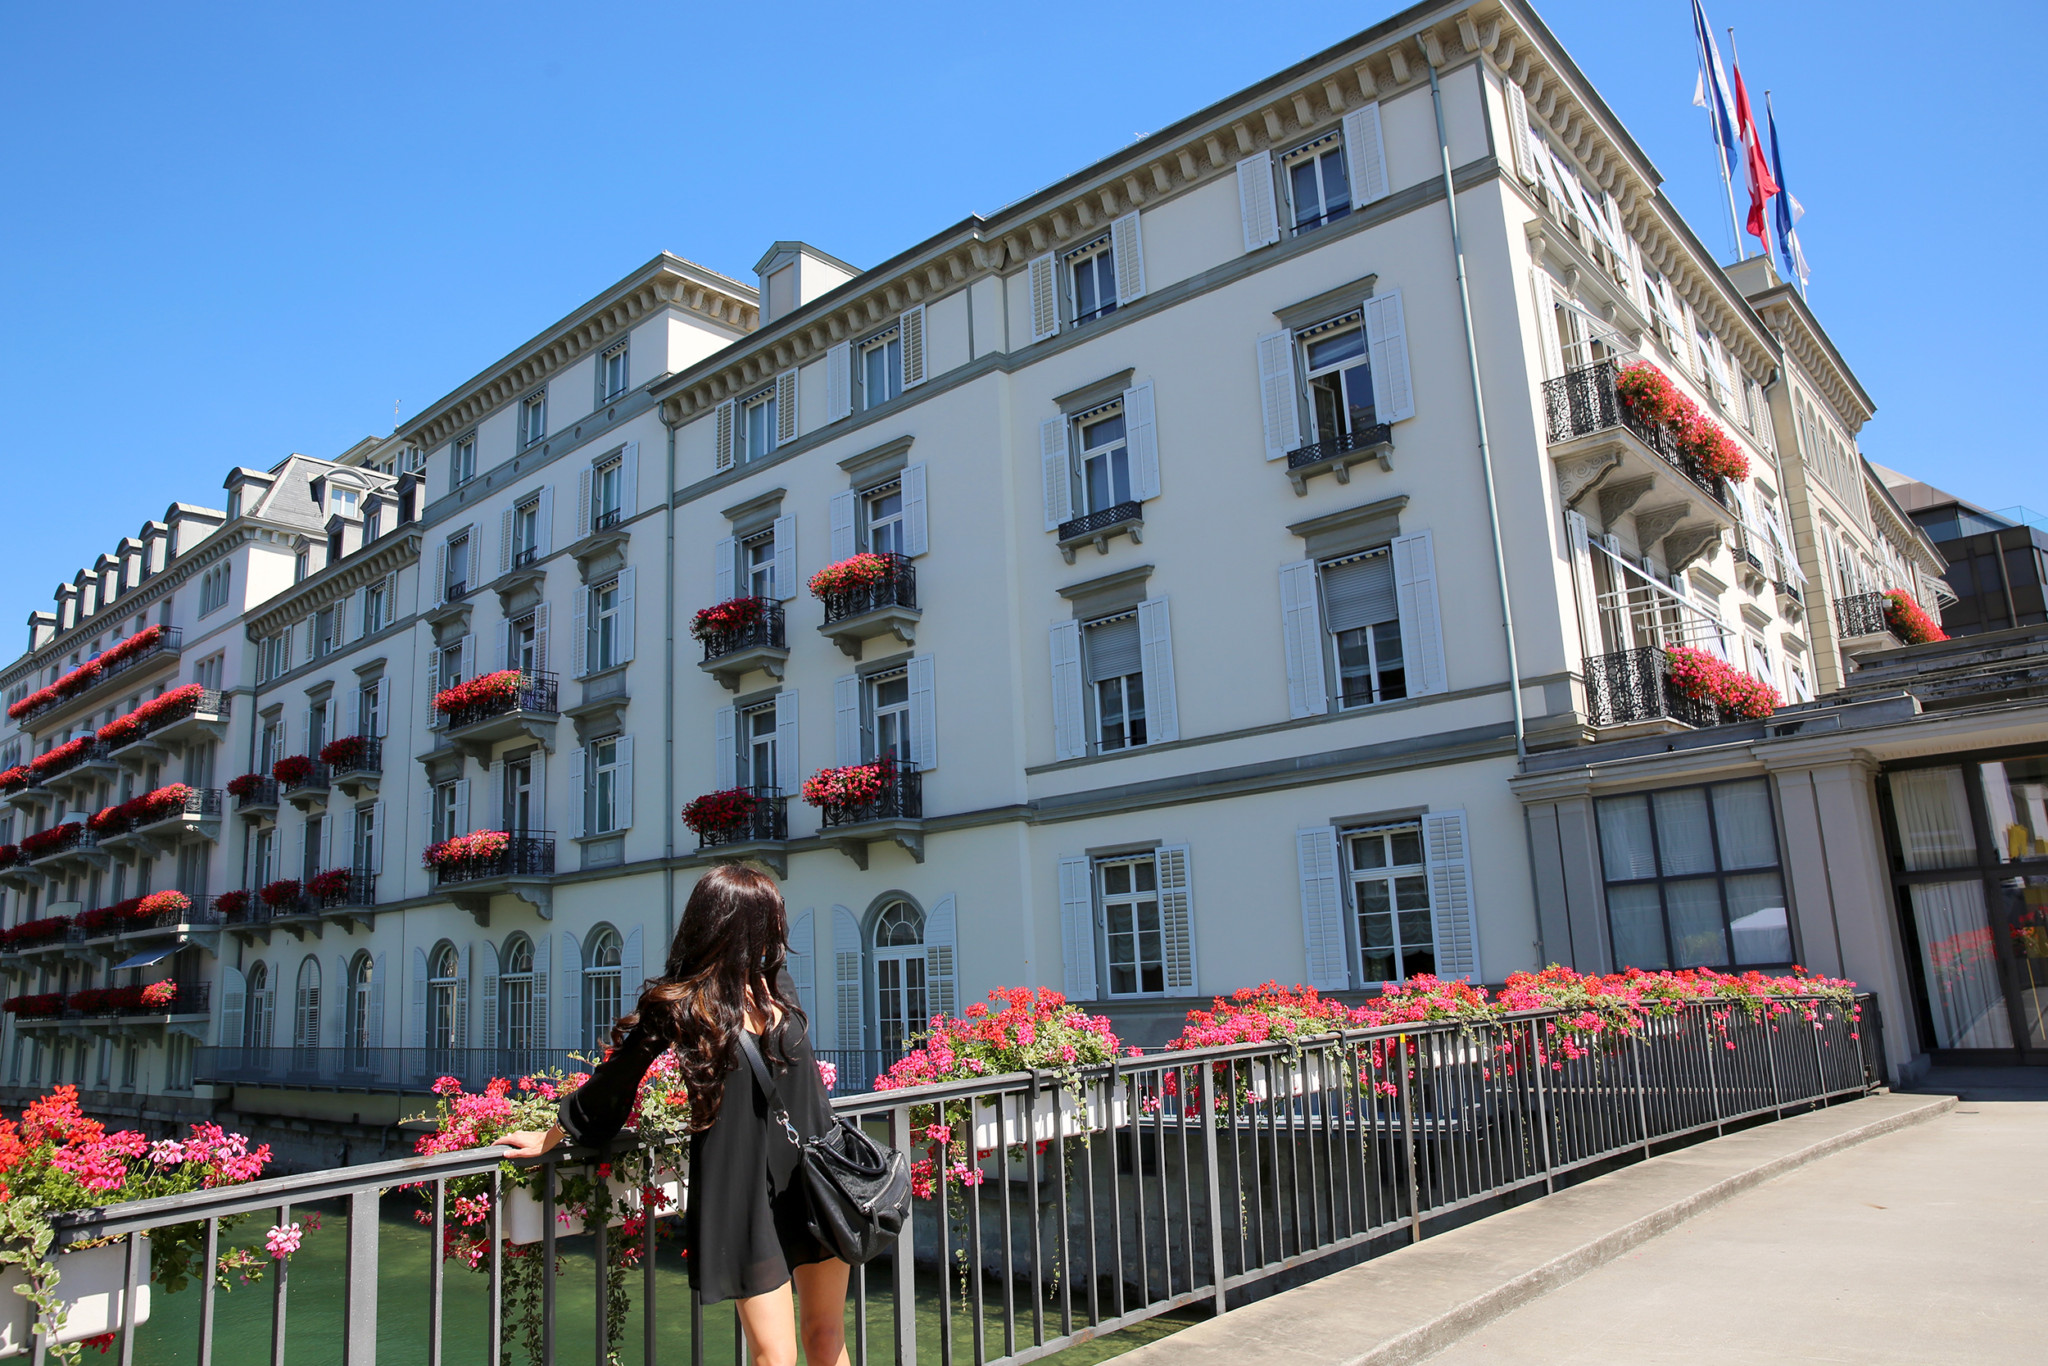 A Review Of My Stay At The Baur Au Lac Hotel In Zurich